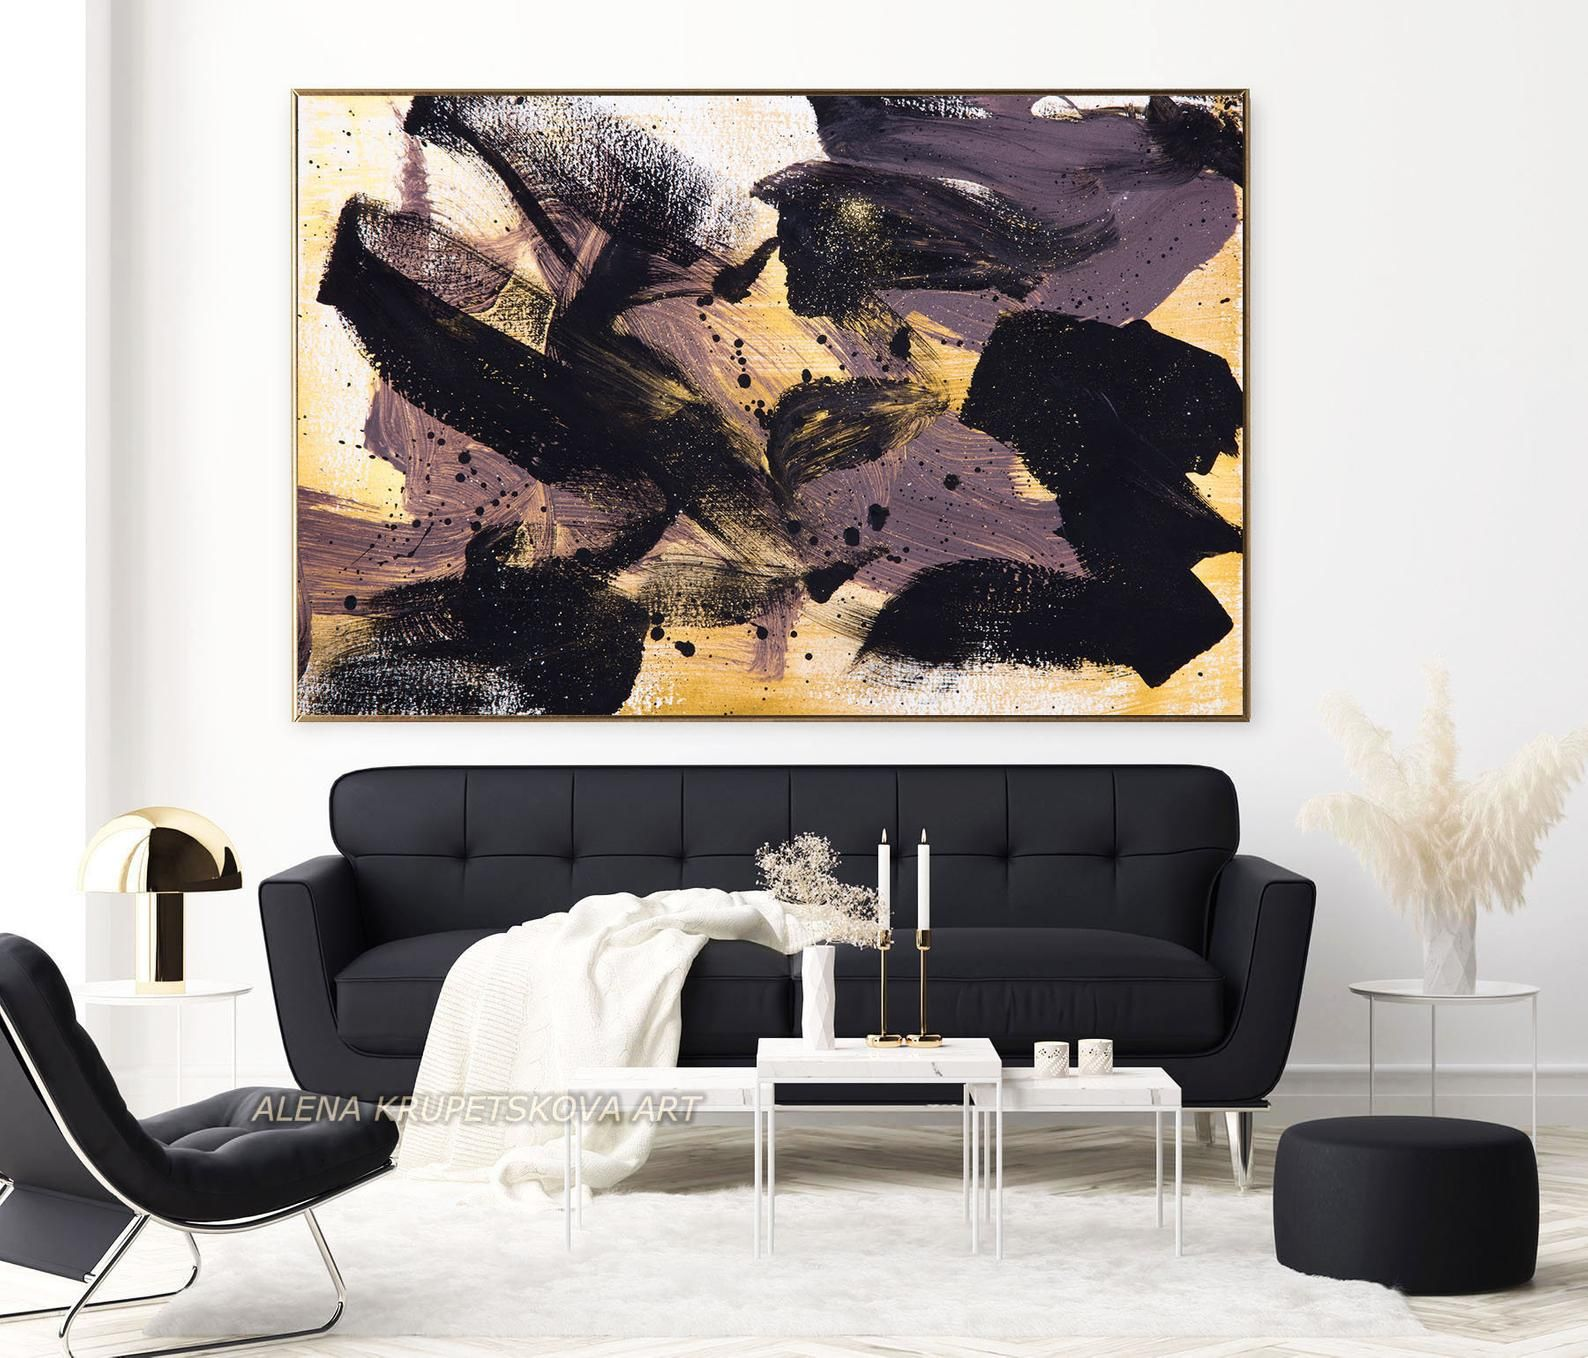 Black And Gold Dark Painting Print Abstract Dark Wall Art On Etsy In 2021 Dark Paintings Glam Wall Art Oversized Wall Art